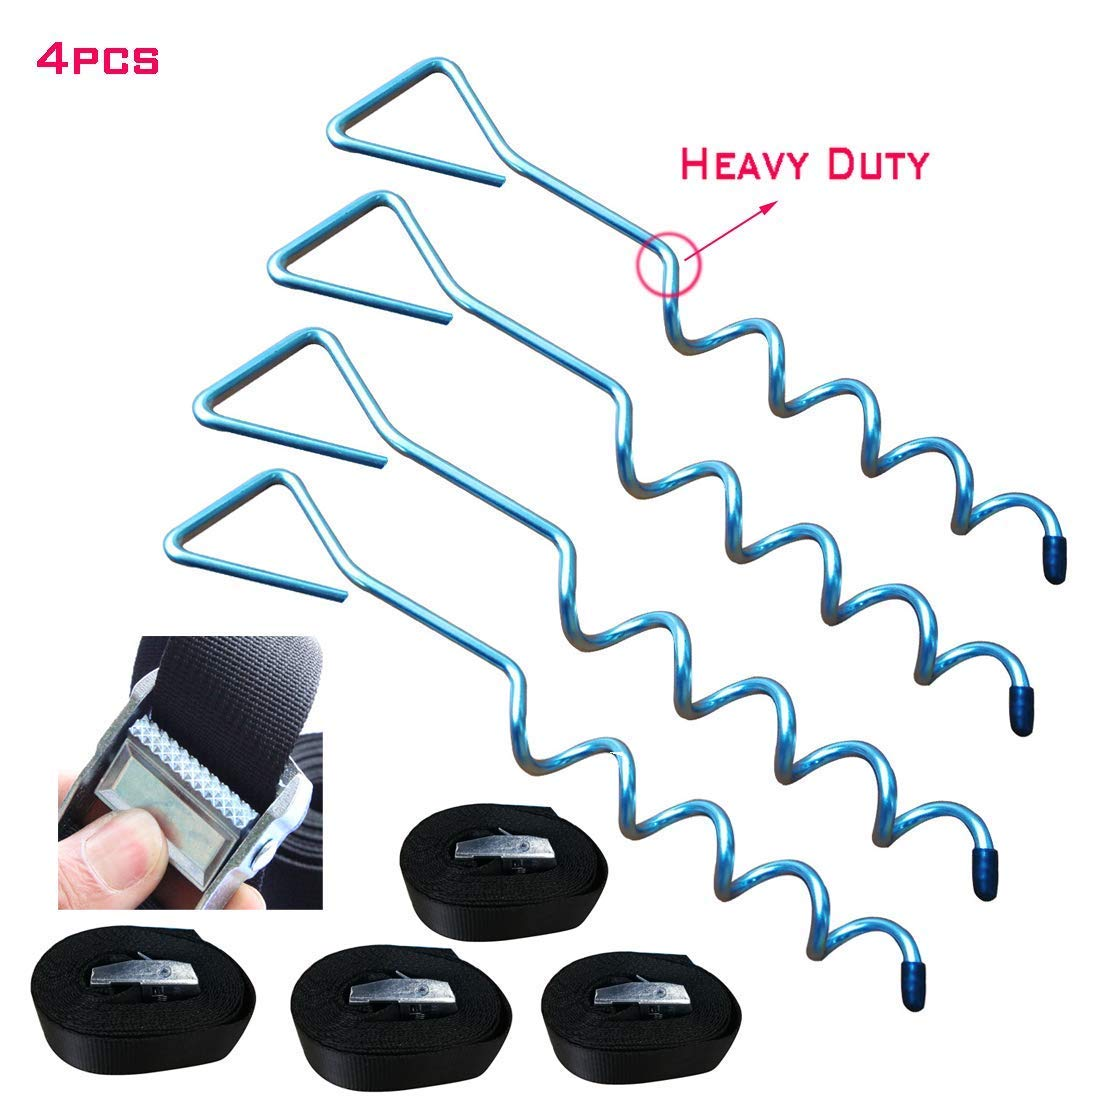 Trampoline Accessories Trampoline Stakes Trampoline Anchors Trampoline Stakes Anchors Stakes Heavy Duty Wind Stakes Trampoline Anchor Kit Trampoline Anchor Heavy Duty Stakes Trampoline Tie Down Kits by Deep Touch